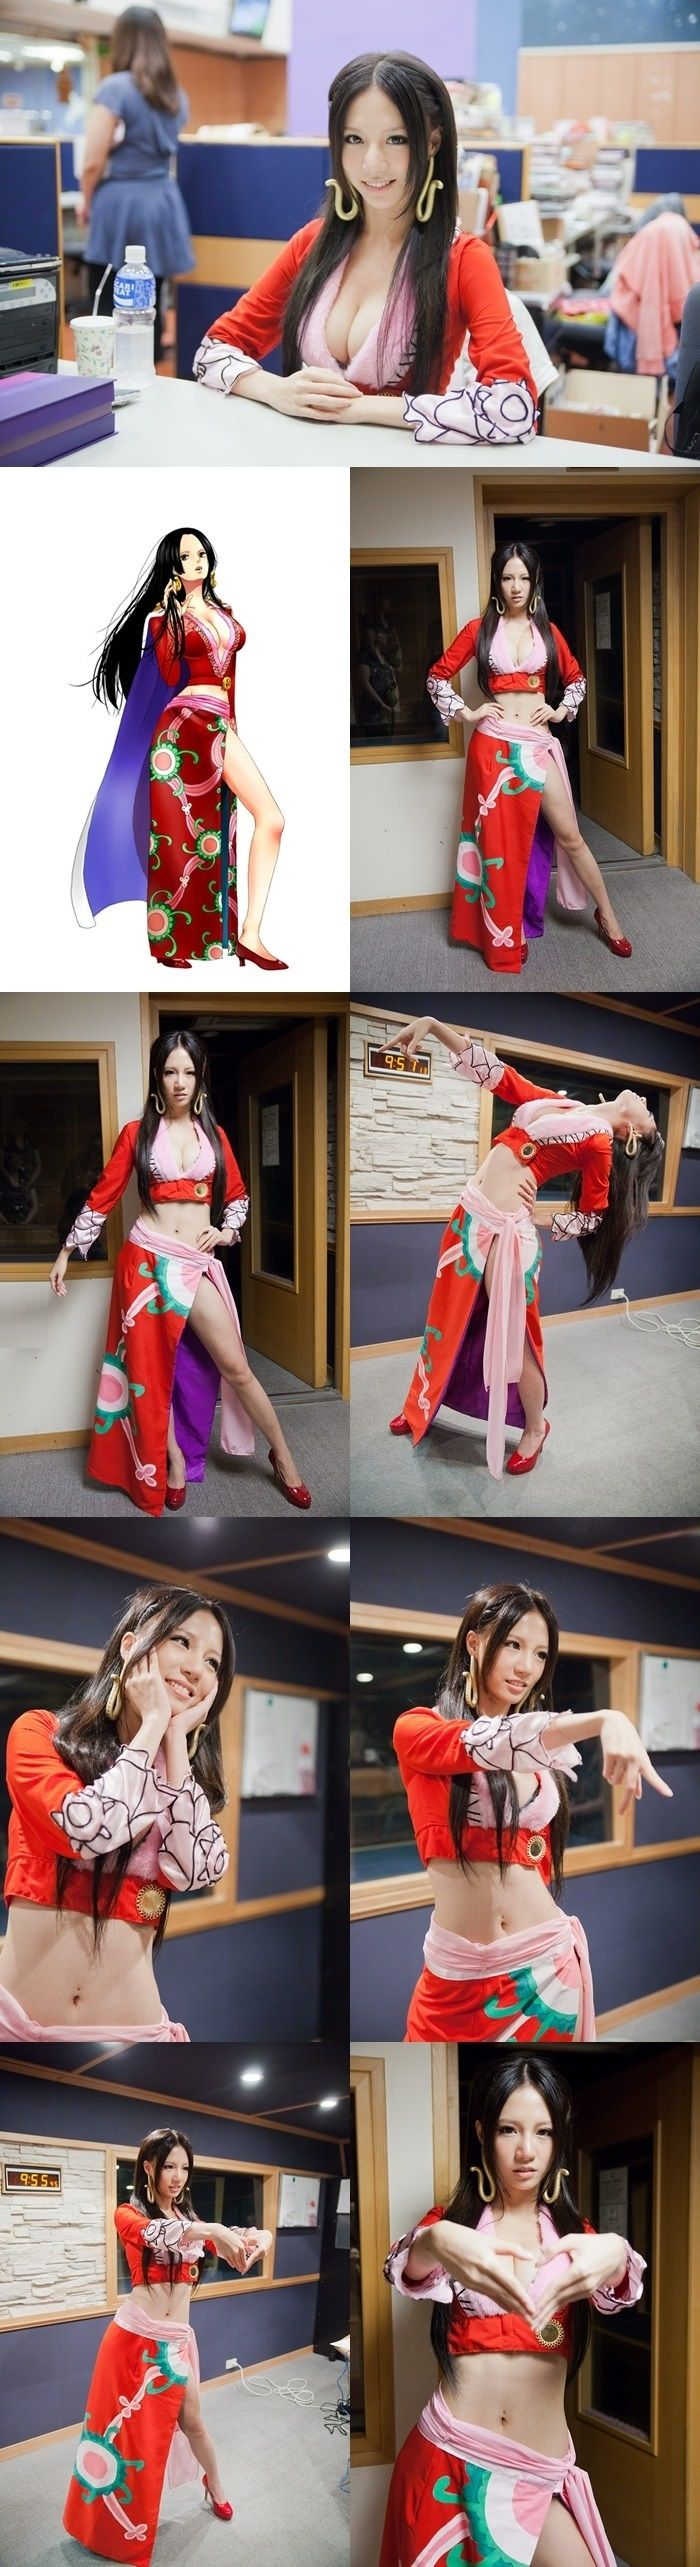 Boa Hancock Cosplay - funny pictures - funny photos - funny images - funny pics - funny quotes - #lol #humor #funny